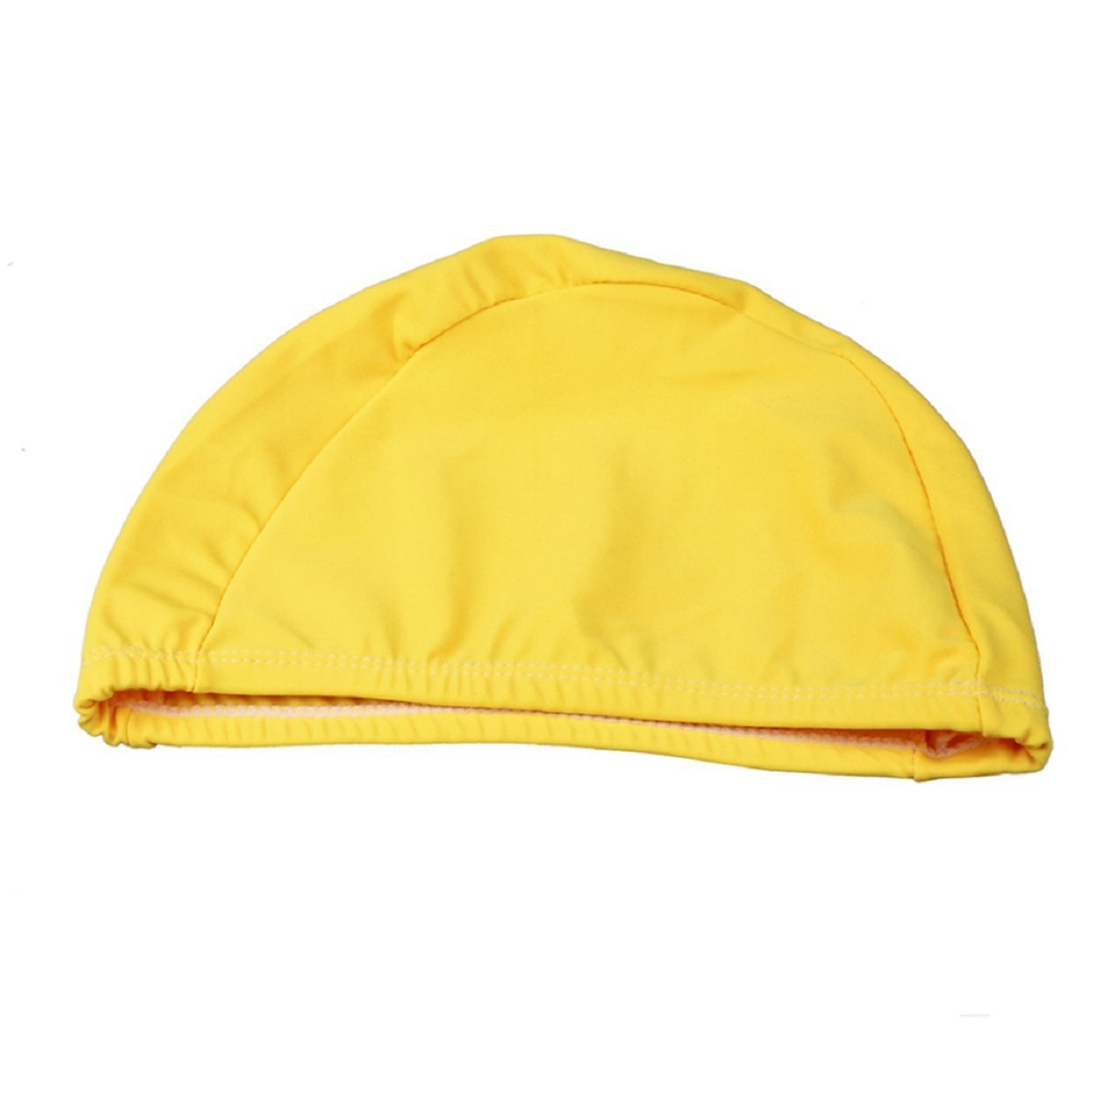 Adult Swimming Hats Unisex Outdoor Sports Stretch Cap